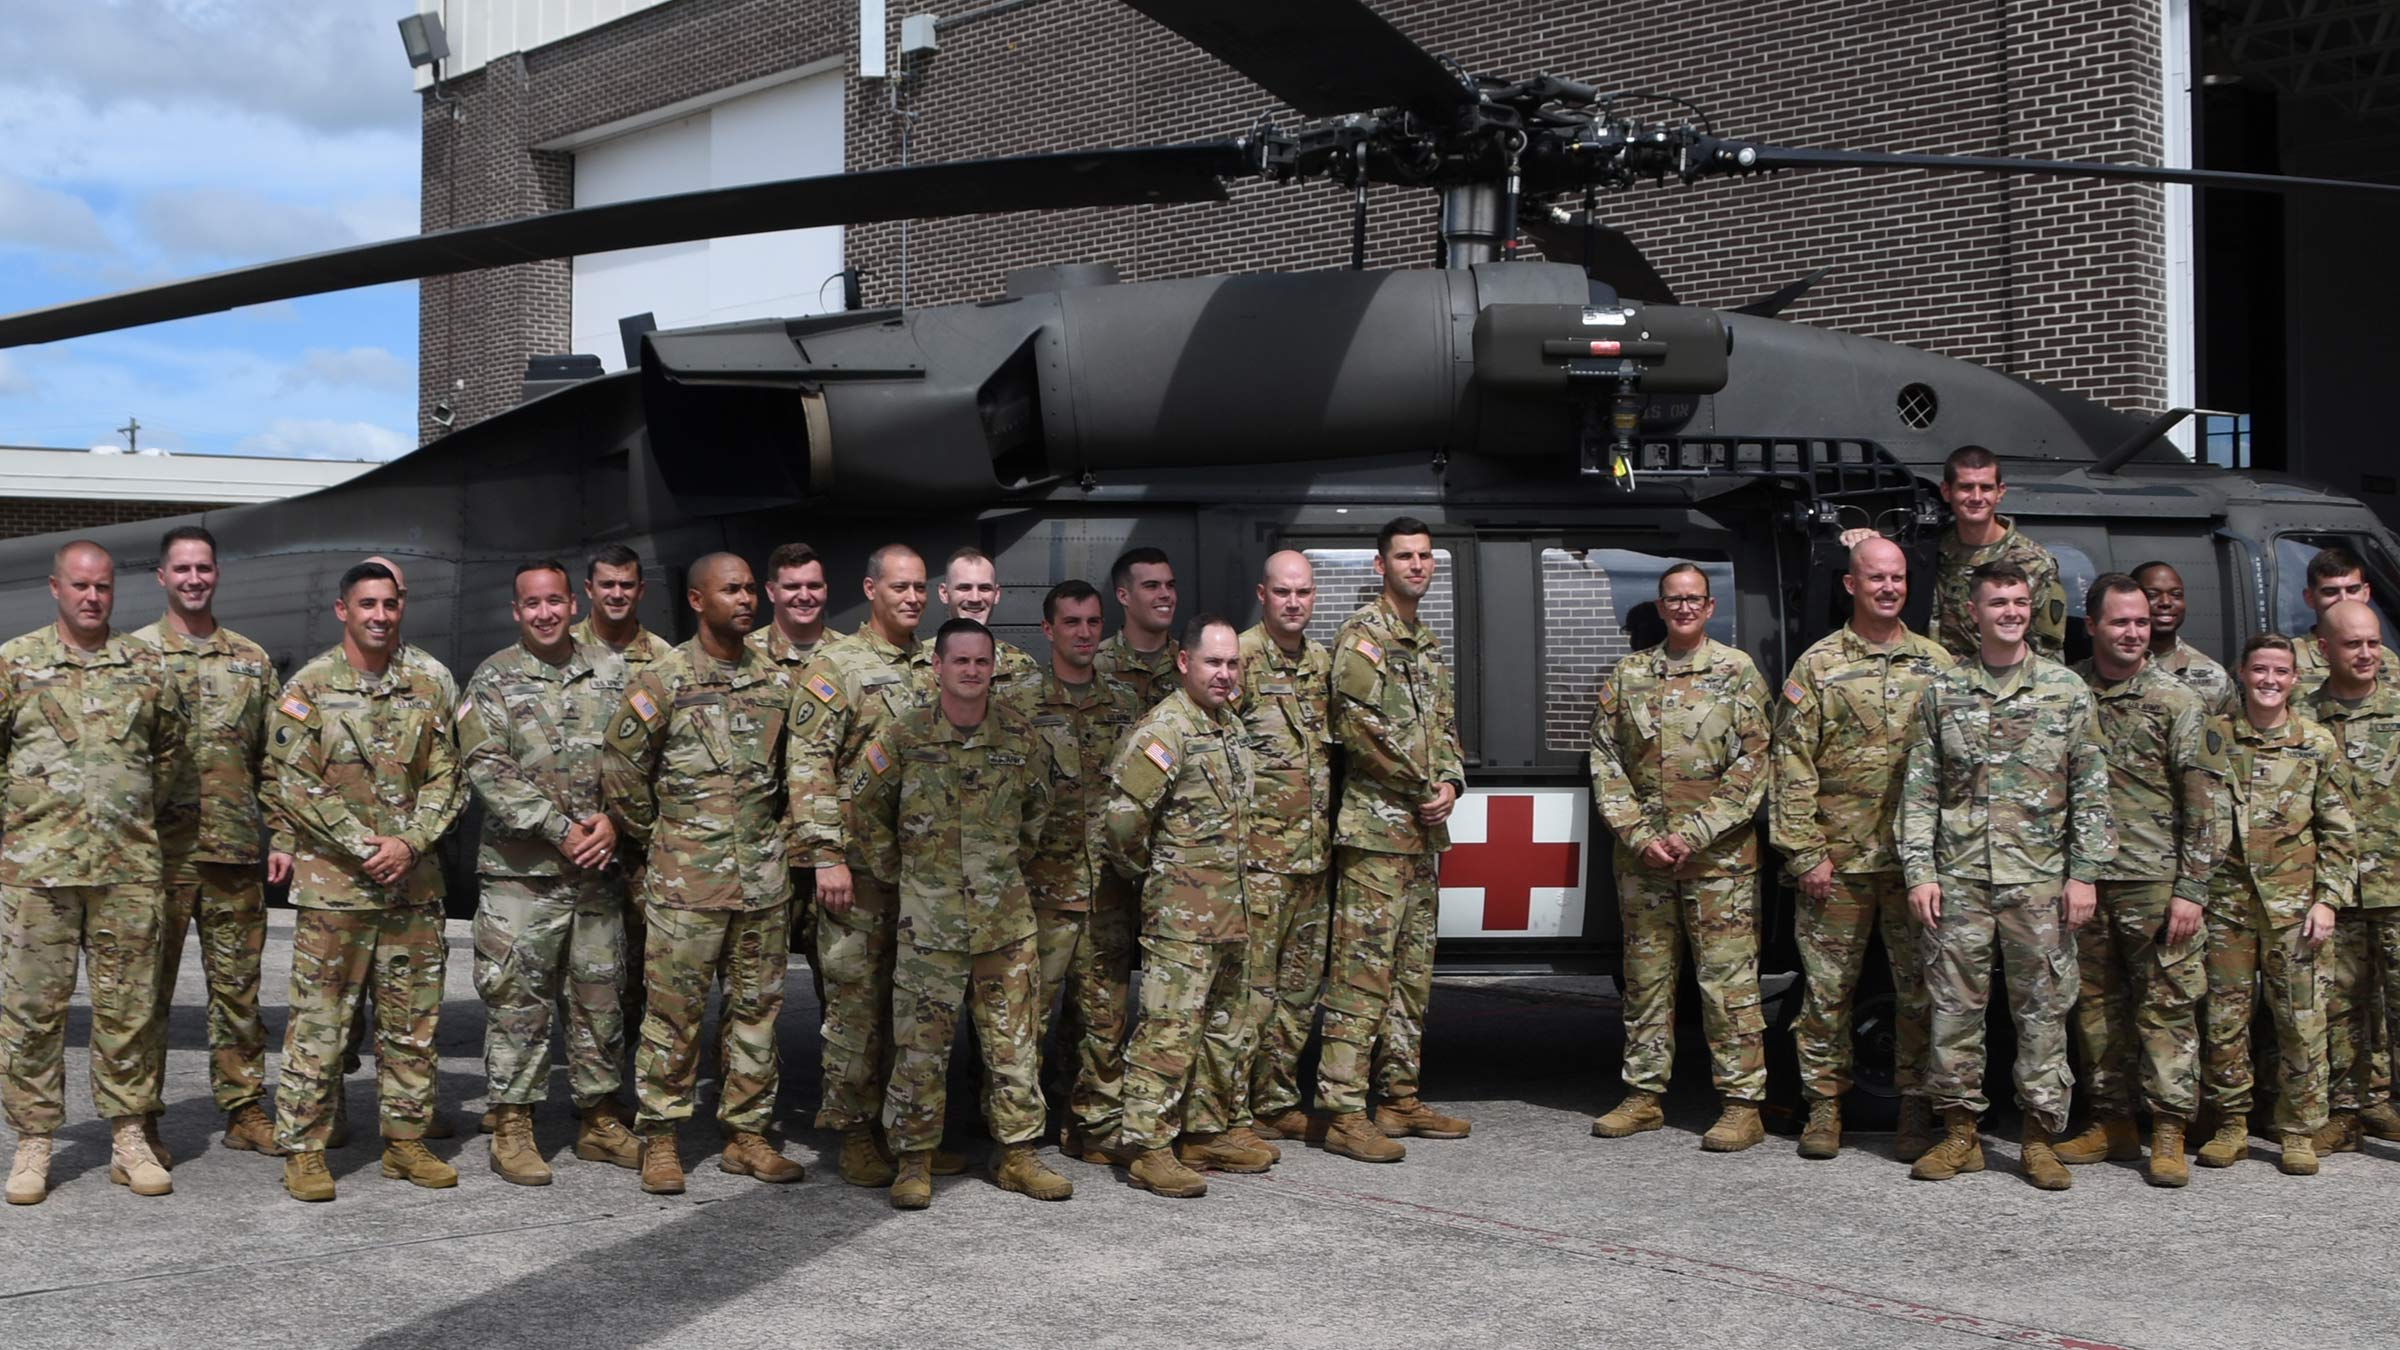 service memebers pose in front of helicopter